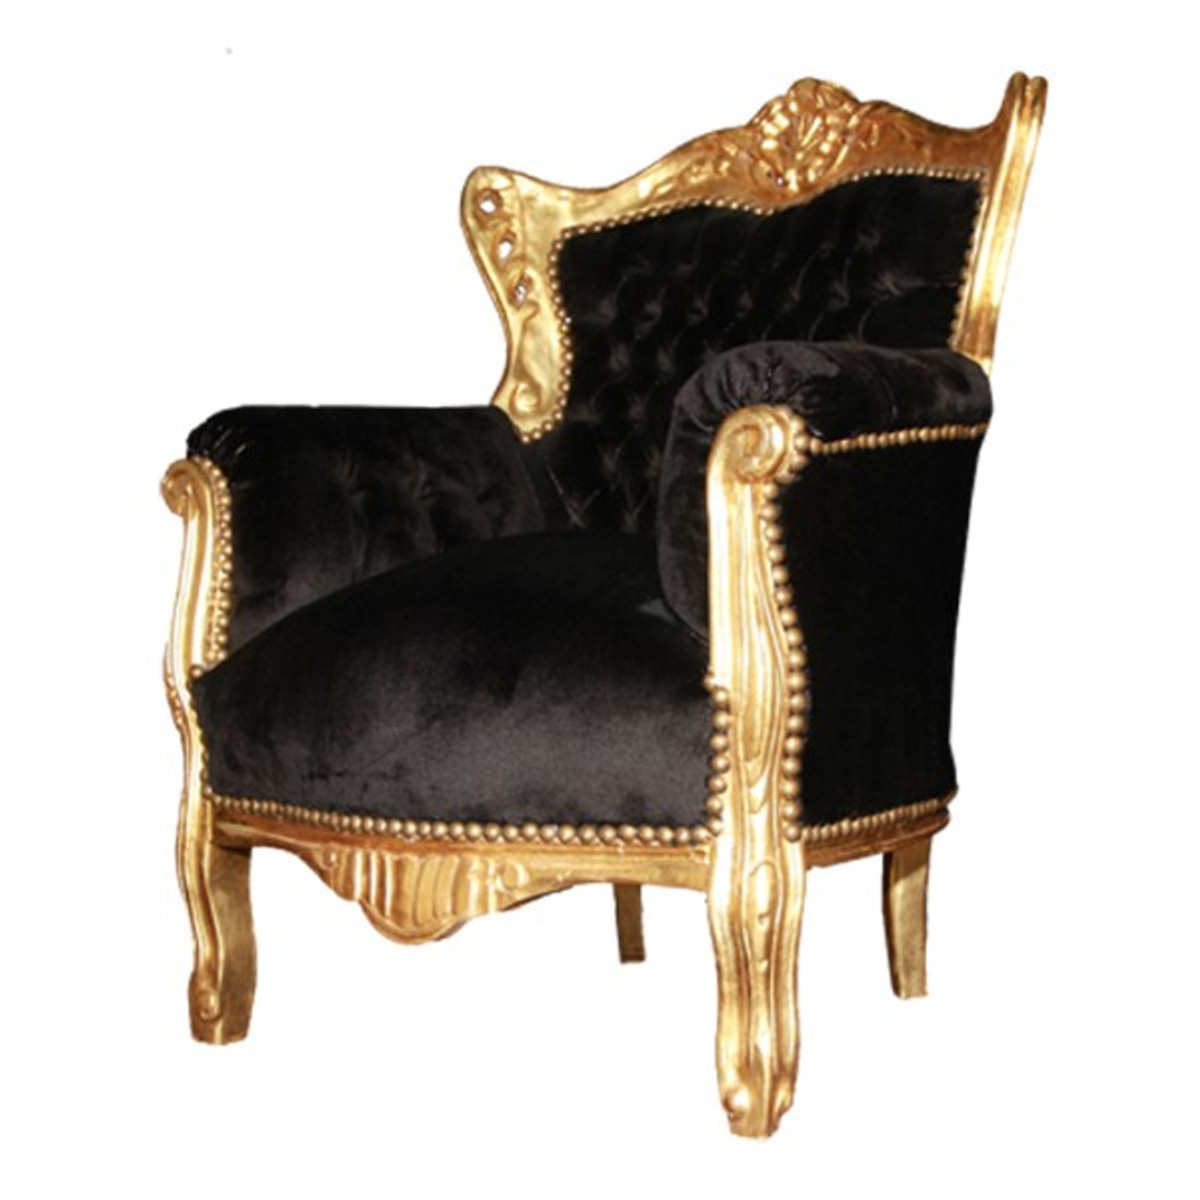 barock kinder sessel schwarz gold casa padrino farbwelten schwarz gold. Black Bedroom Furniture Sets. Home Design Ideas